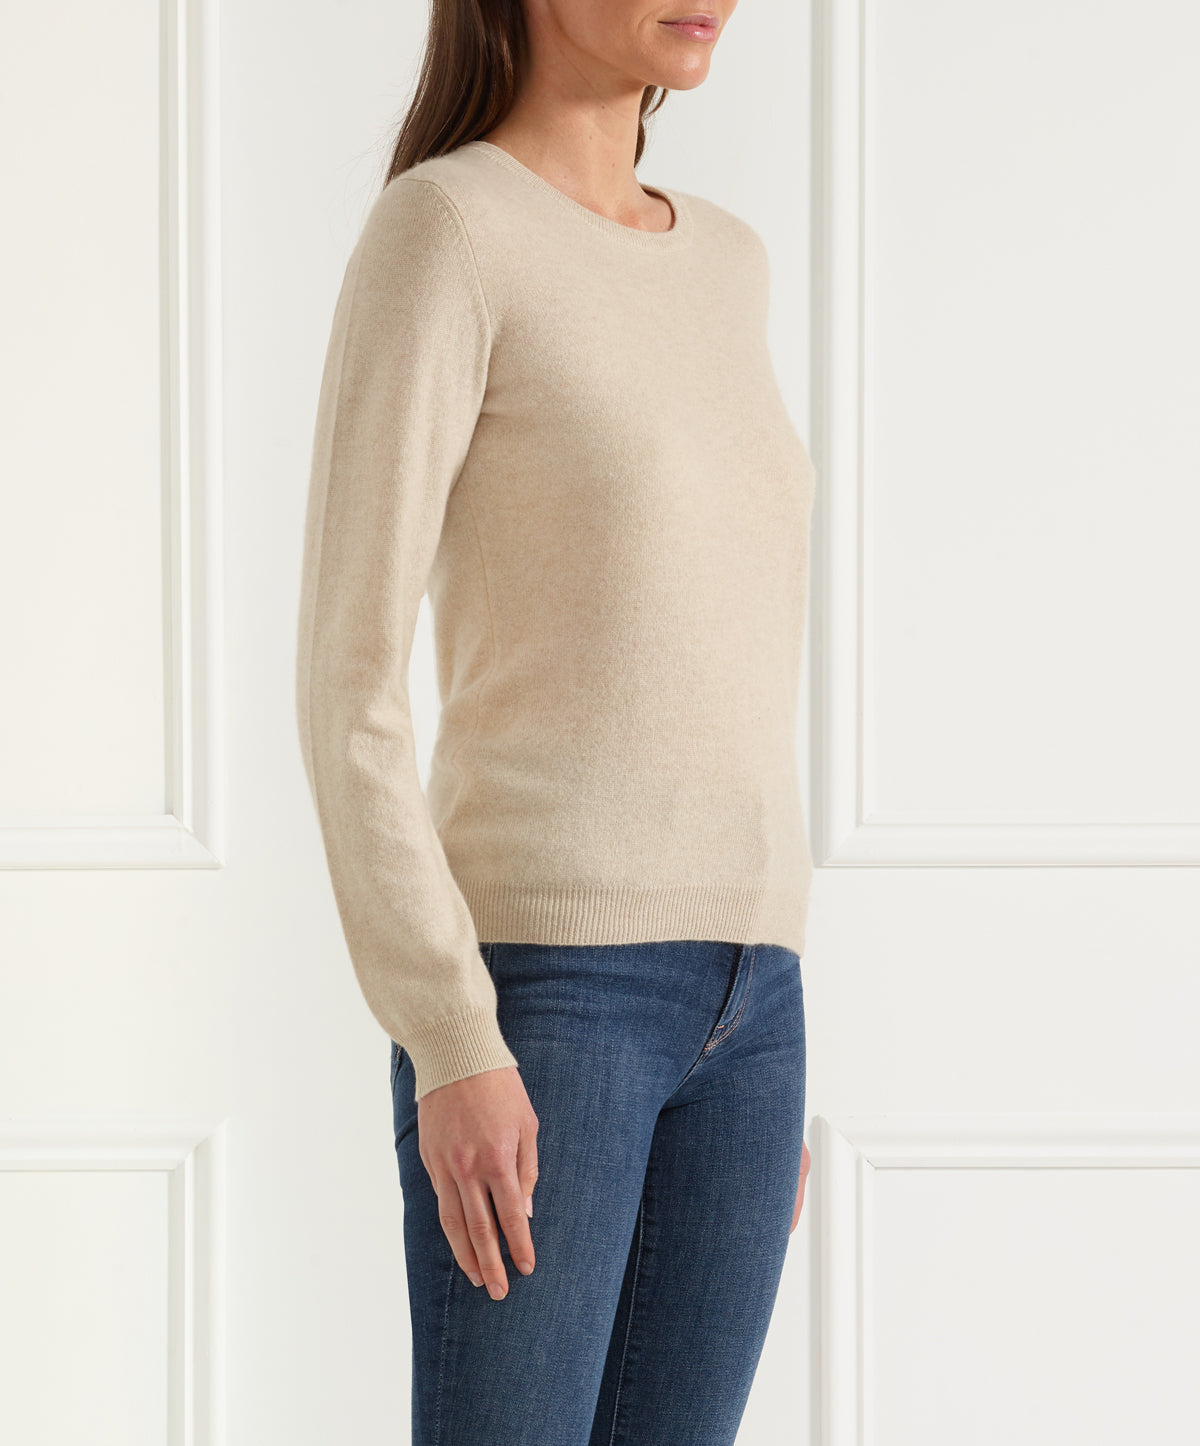 Rolo Round Sweater